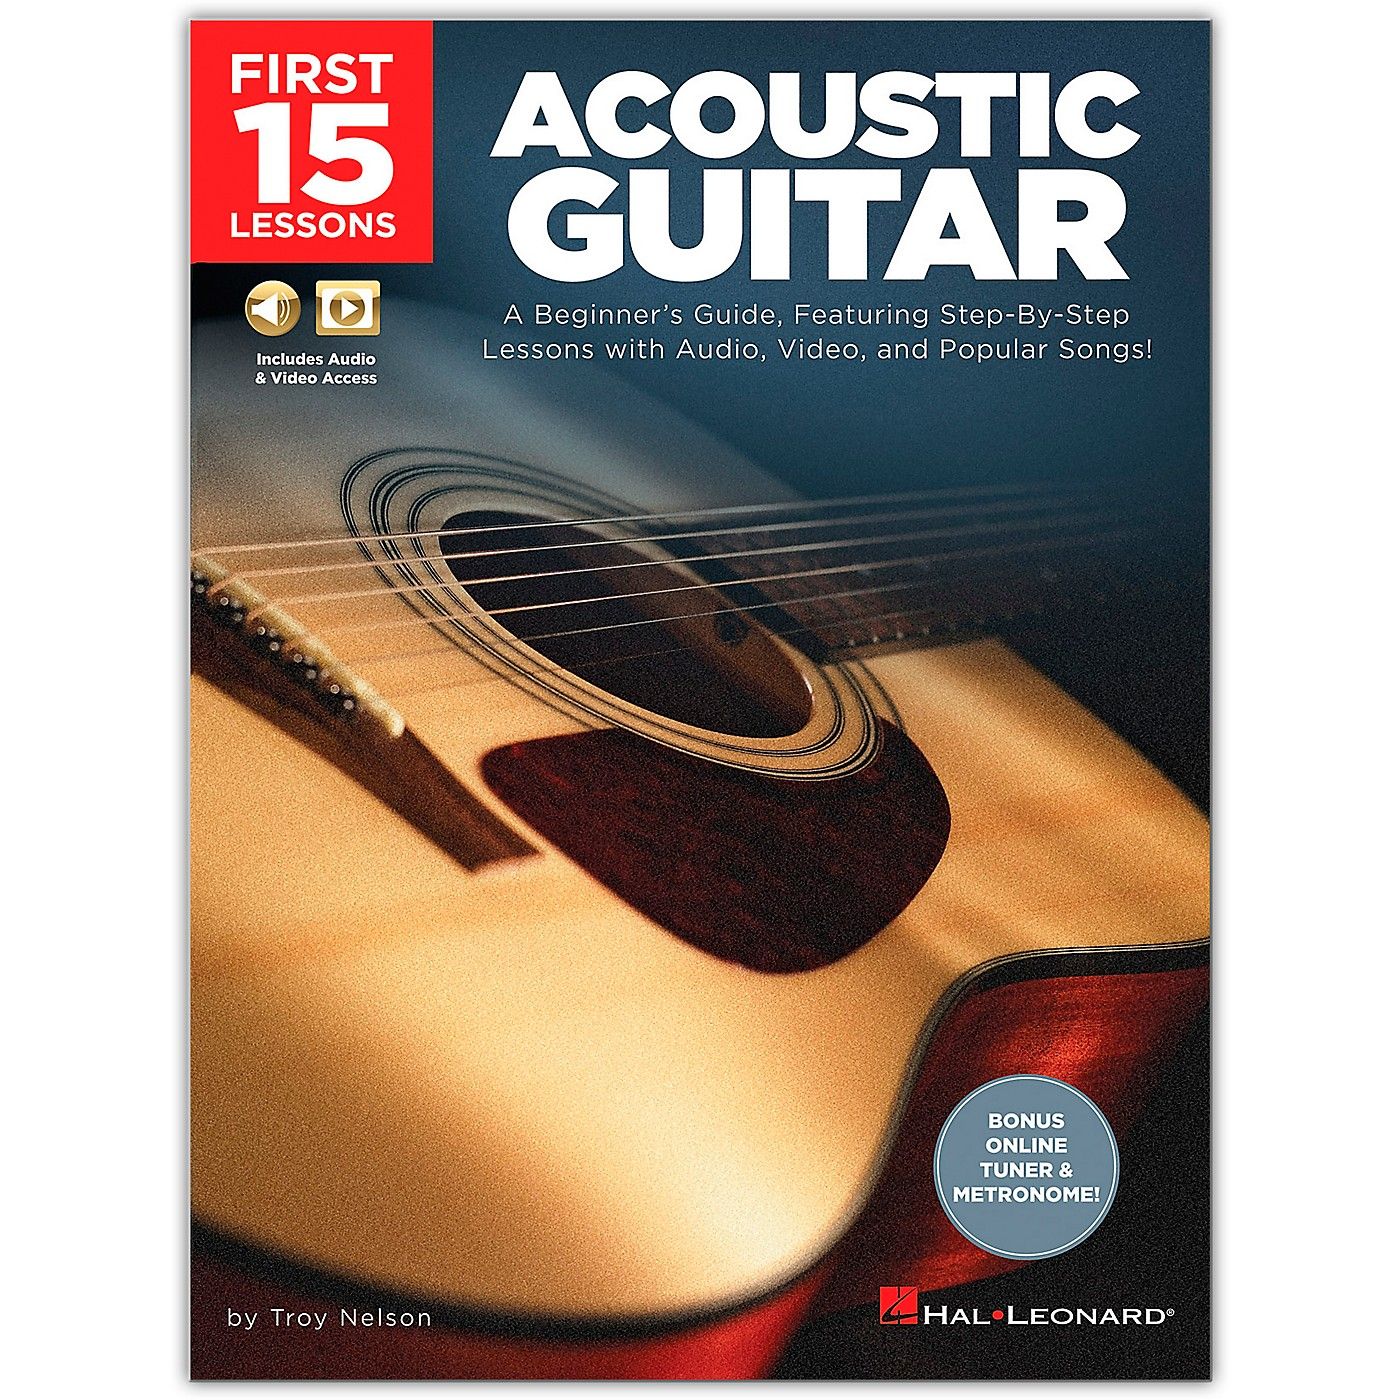 Hal Leonard First 15 Lessons Acoustic Guitar - A Beginner's Guide, Featuring Step-By-Step Lessons with Audio, Video, and Popular Songs! Book/Media Online thumbnail